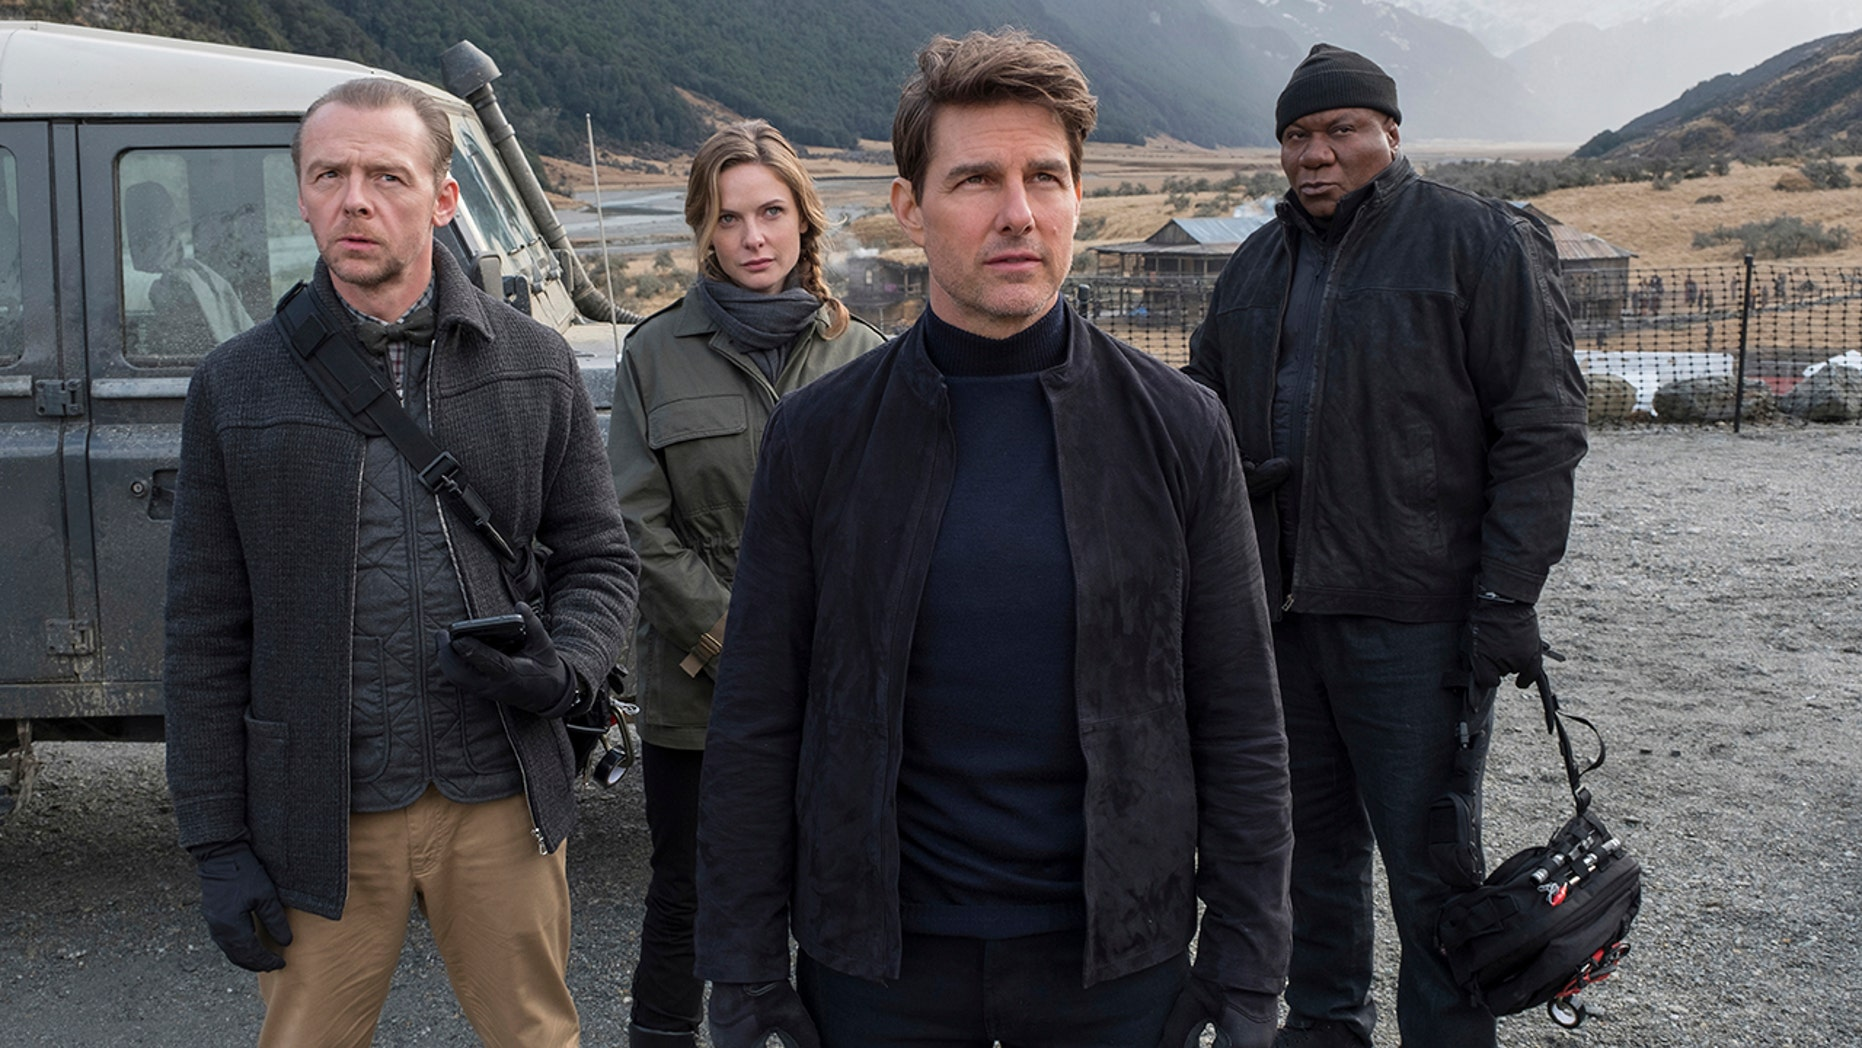 'Fallout' Director Christopher McQuarrie to Write, Direct Next 2 'Mission: Impossible' Films